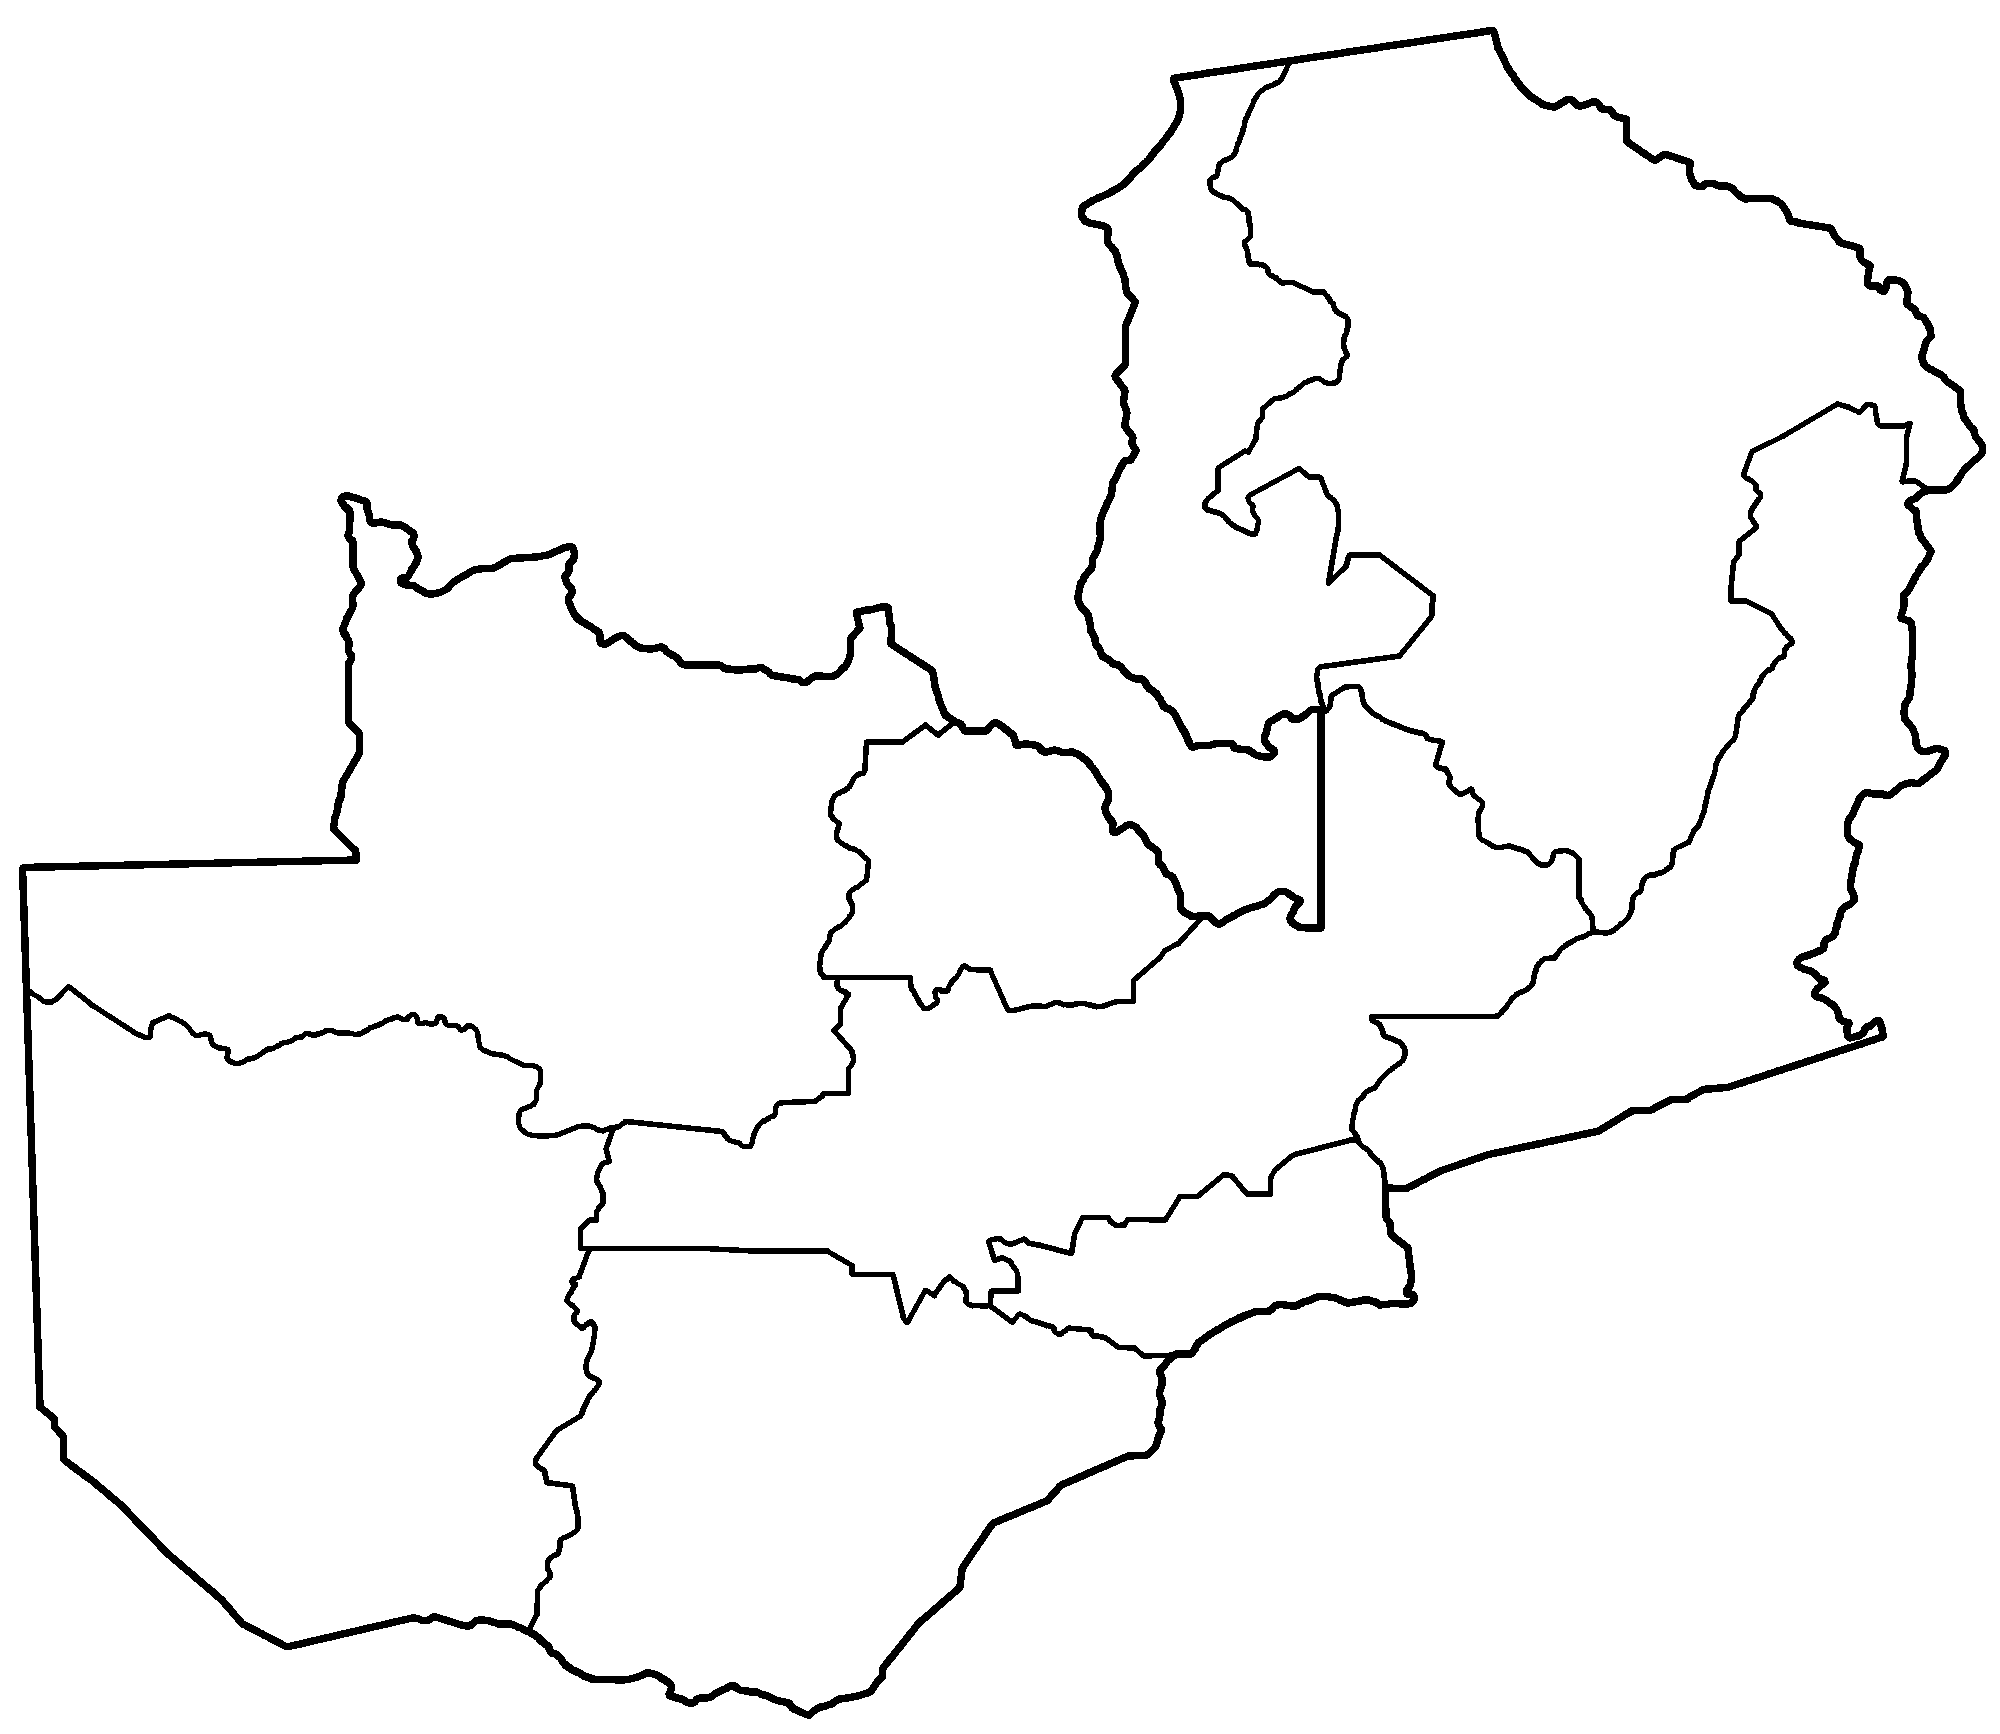 Zambia Provinces Blank